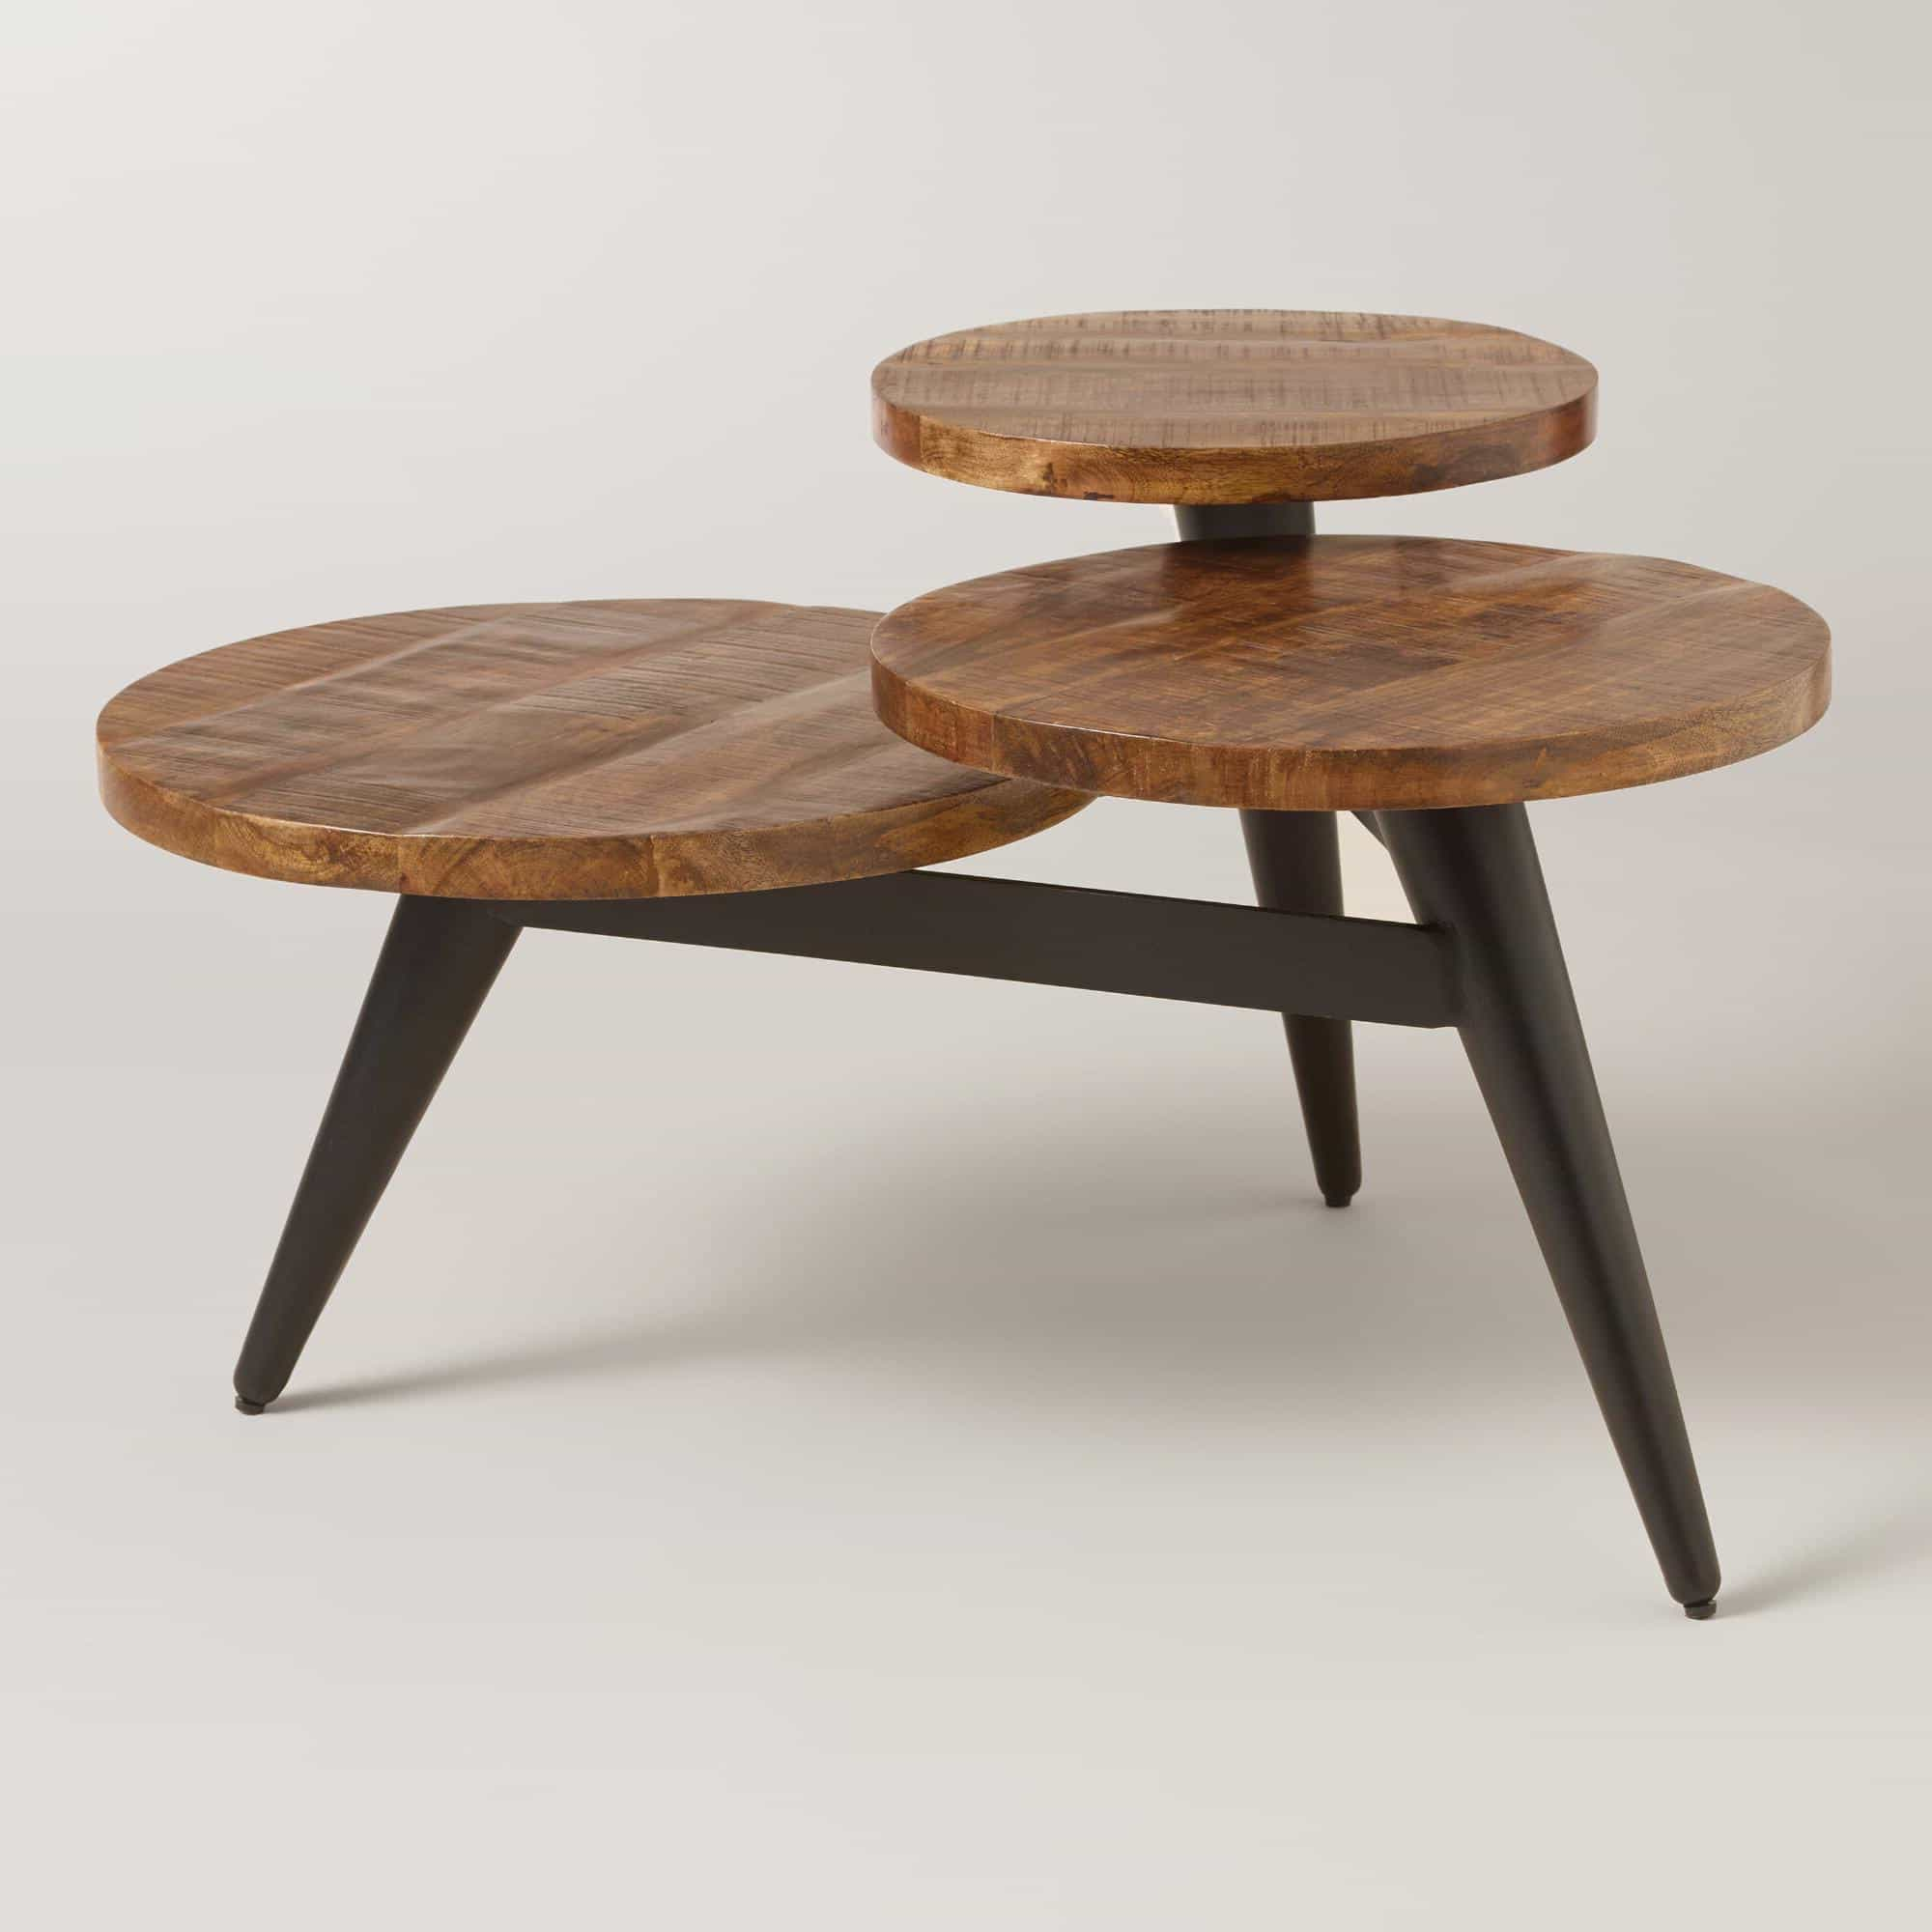 Unique Three Tiers Wood Round Coffee Table In Contemporary Style (Image 30 of 30)